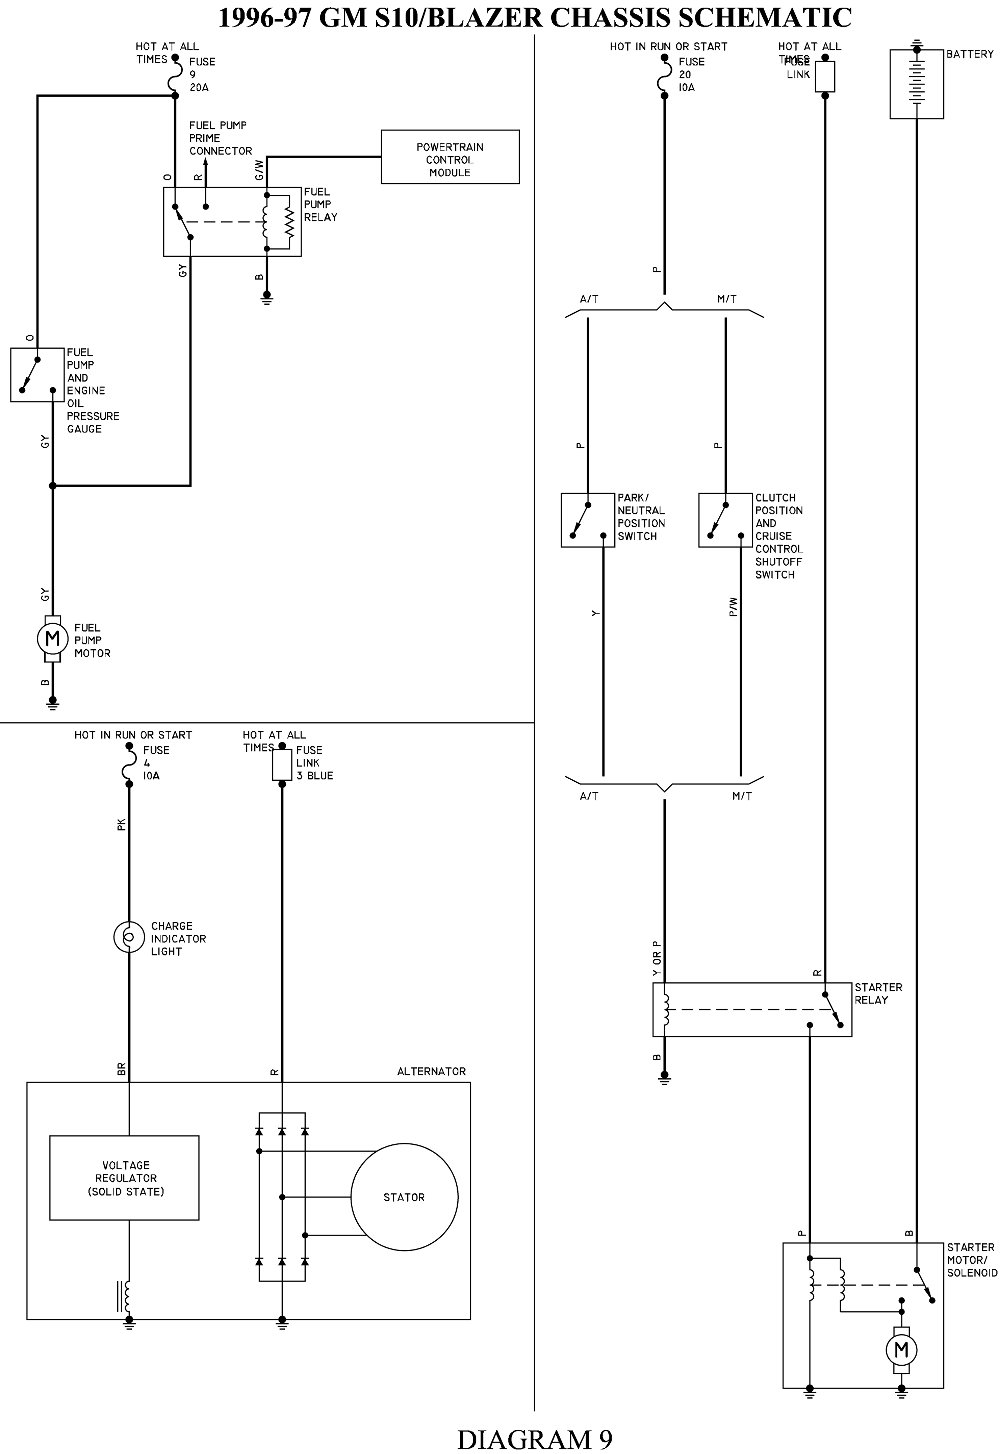 2000 Gmc Sonoma Wiring Diagram Http Wwwjustanswercom Gm 4933fgmc Fuse For The 2 Ignition Wire A Remote Atrater What Do I Need In